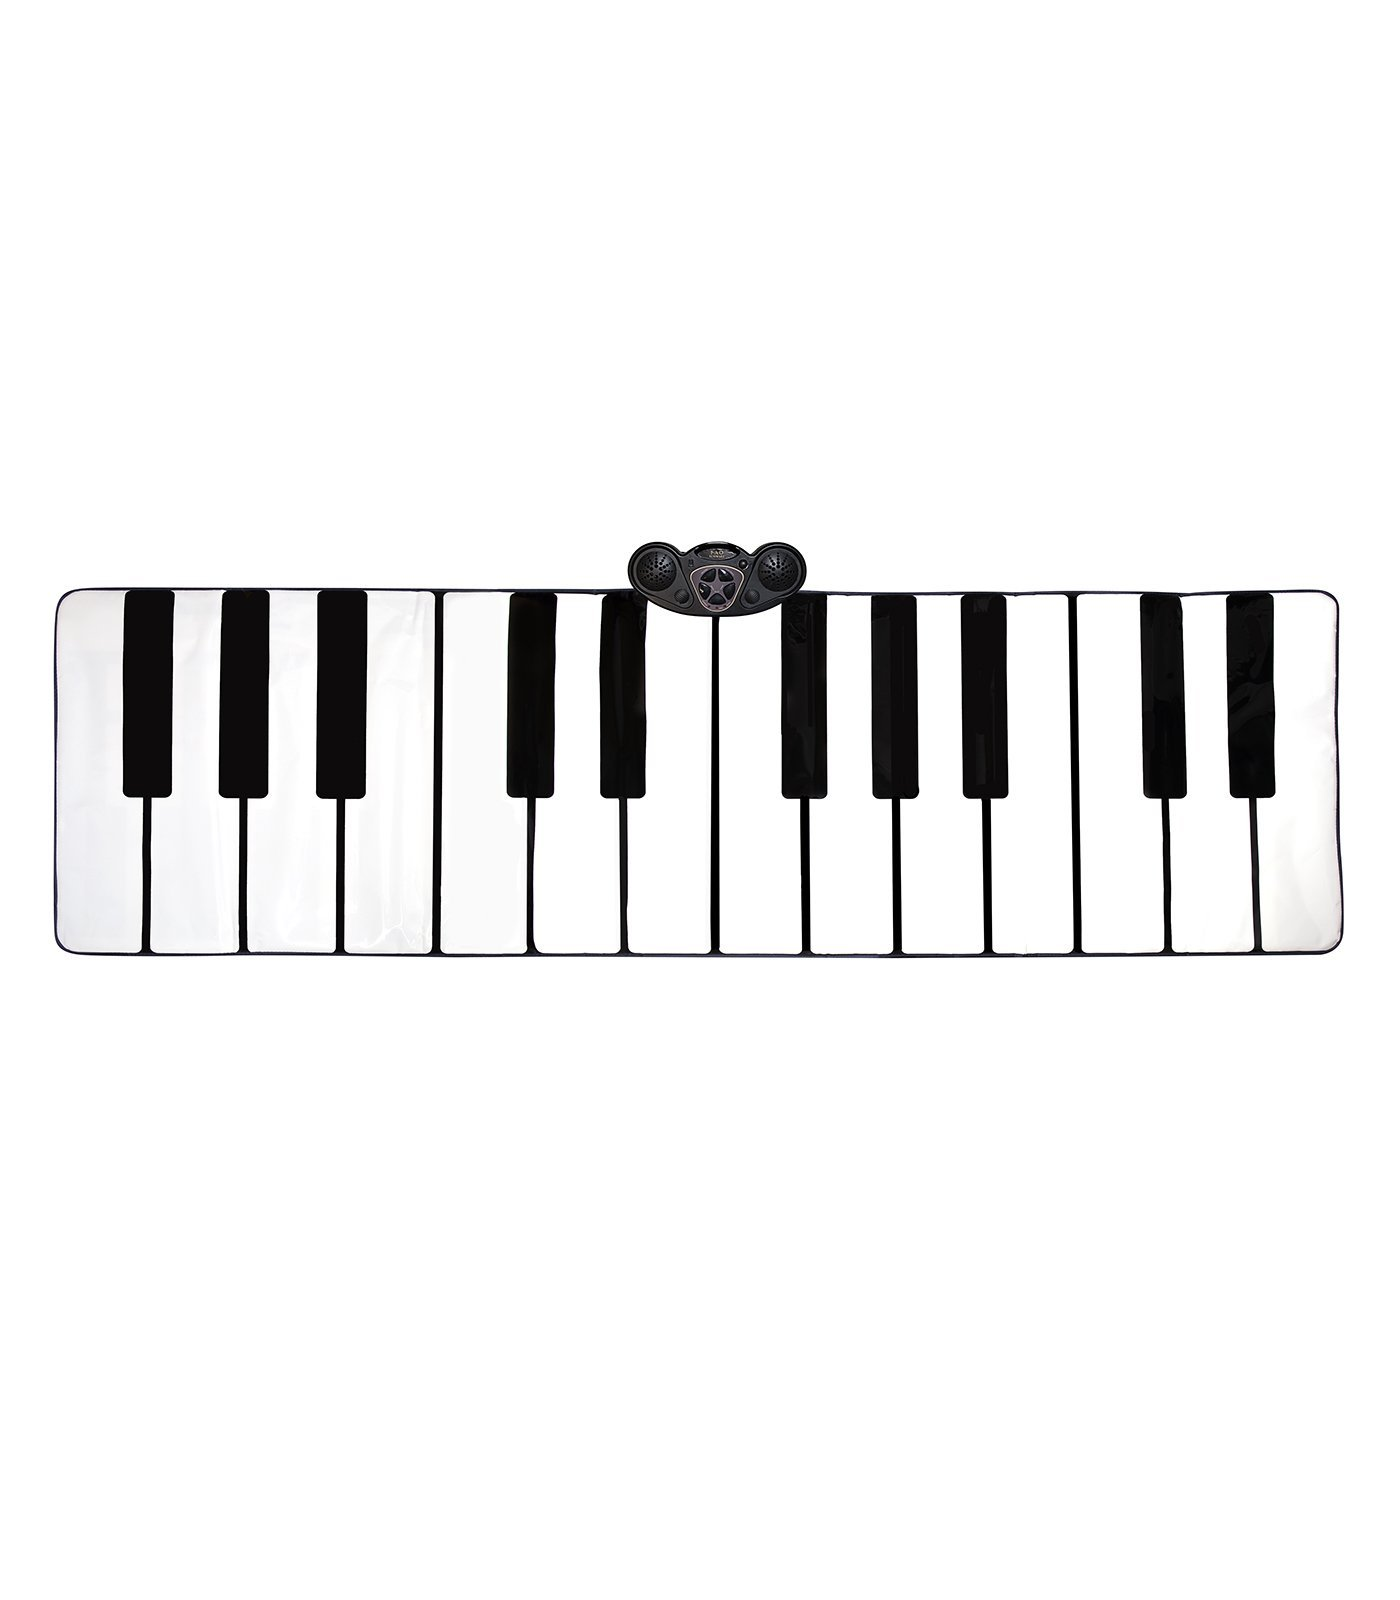 FAO Schwarz Ultimate Piano Dance Mat - 101 X 20-Inch Giant Musical Step 'N' Play Mat For Children - Perform Classic Tunes With Your Feet!, 38 Different Notes - Record & Playback Functions